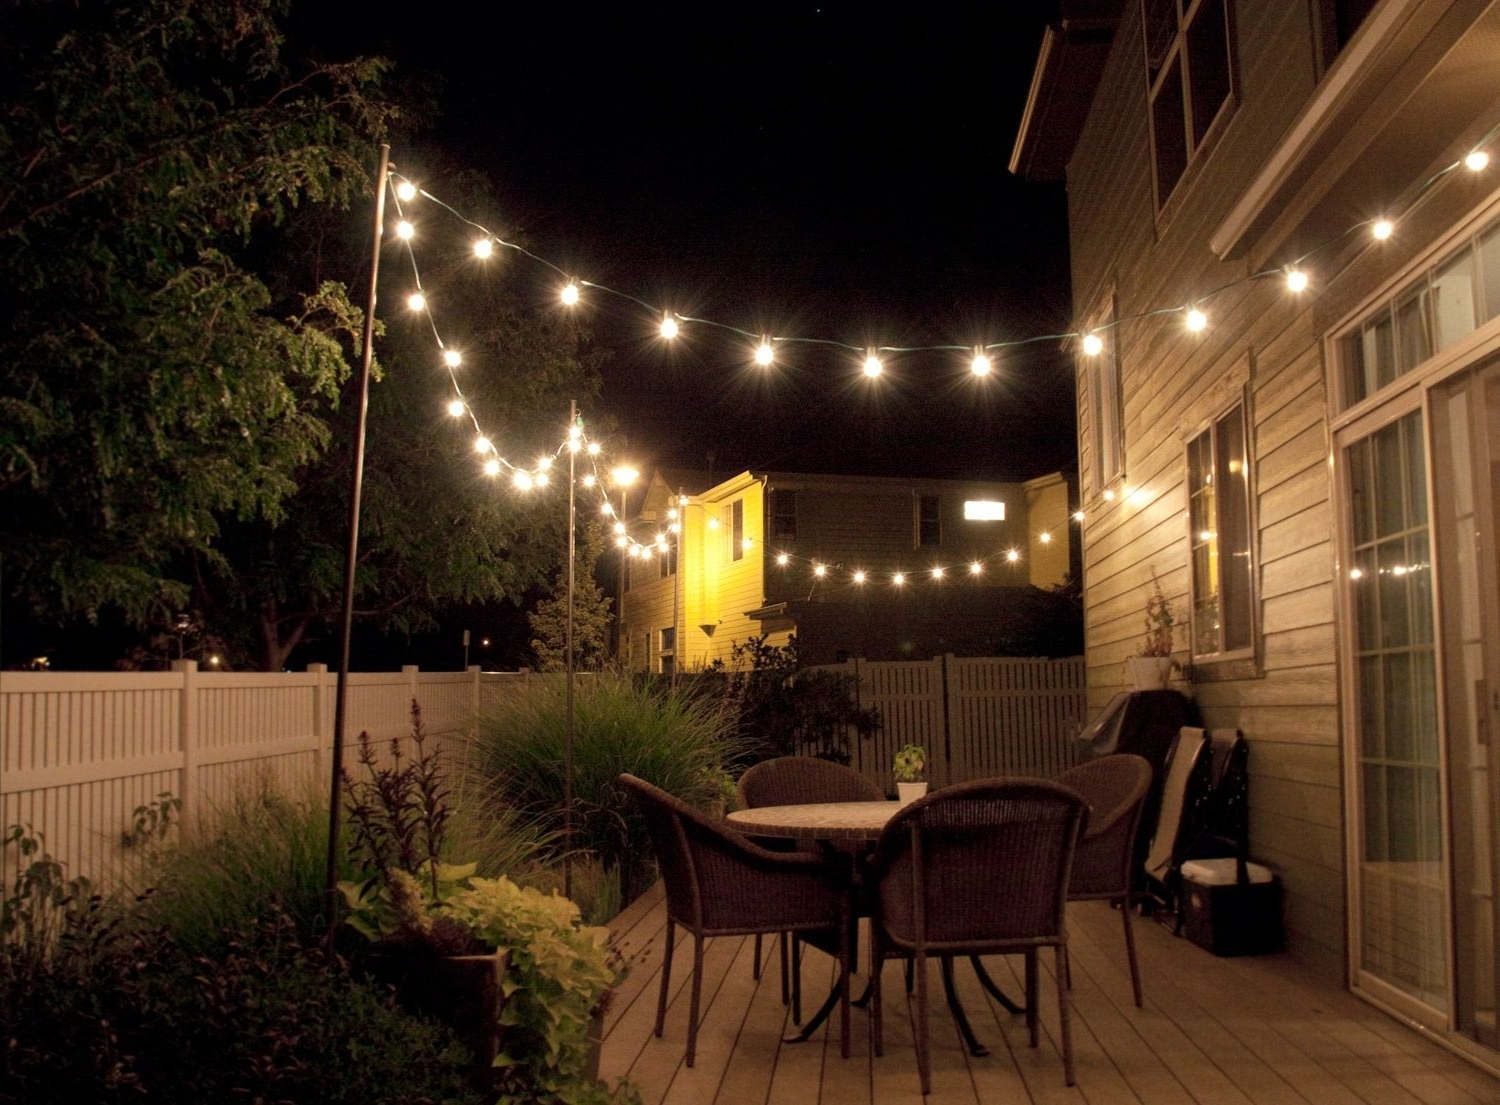 2018 How To Make Inexpensive Poles To Hang String Lights On – Café Style Regarding Outdoor Hanging Deck Lights (View 1 of 20)